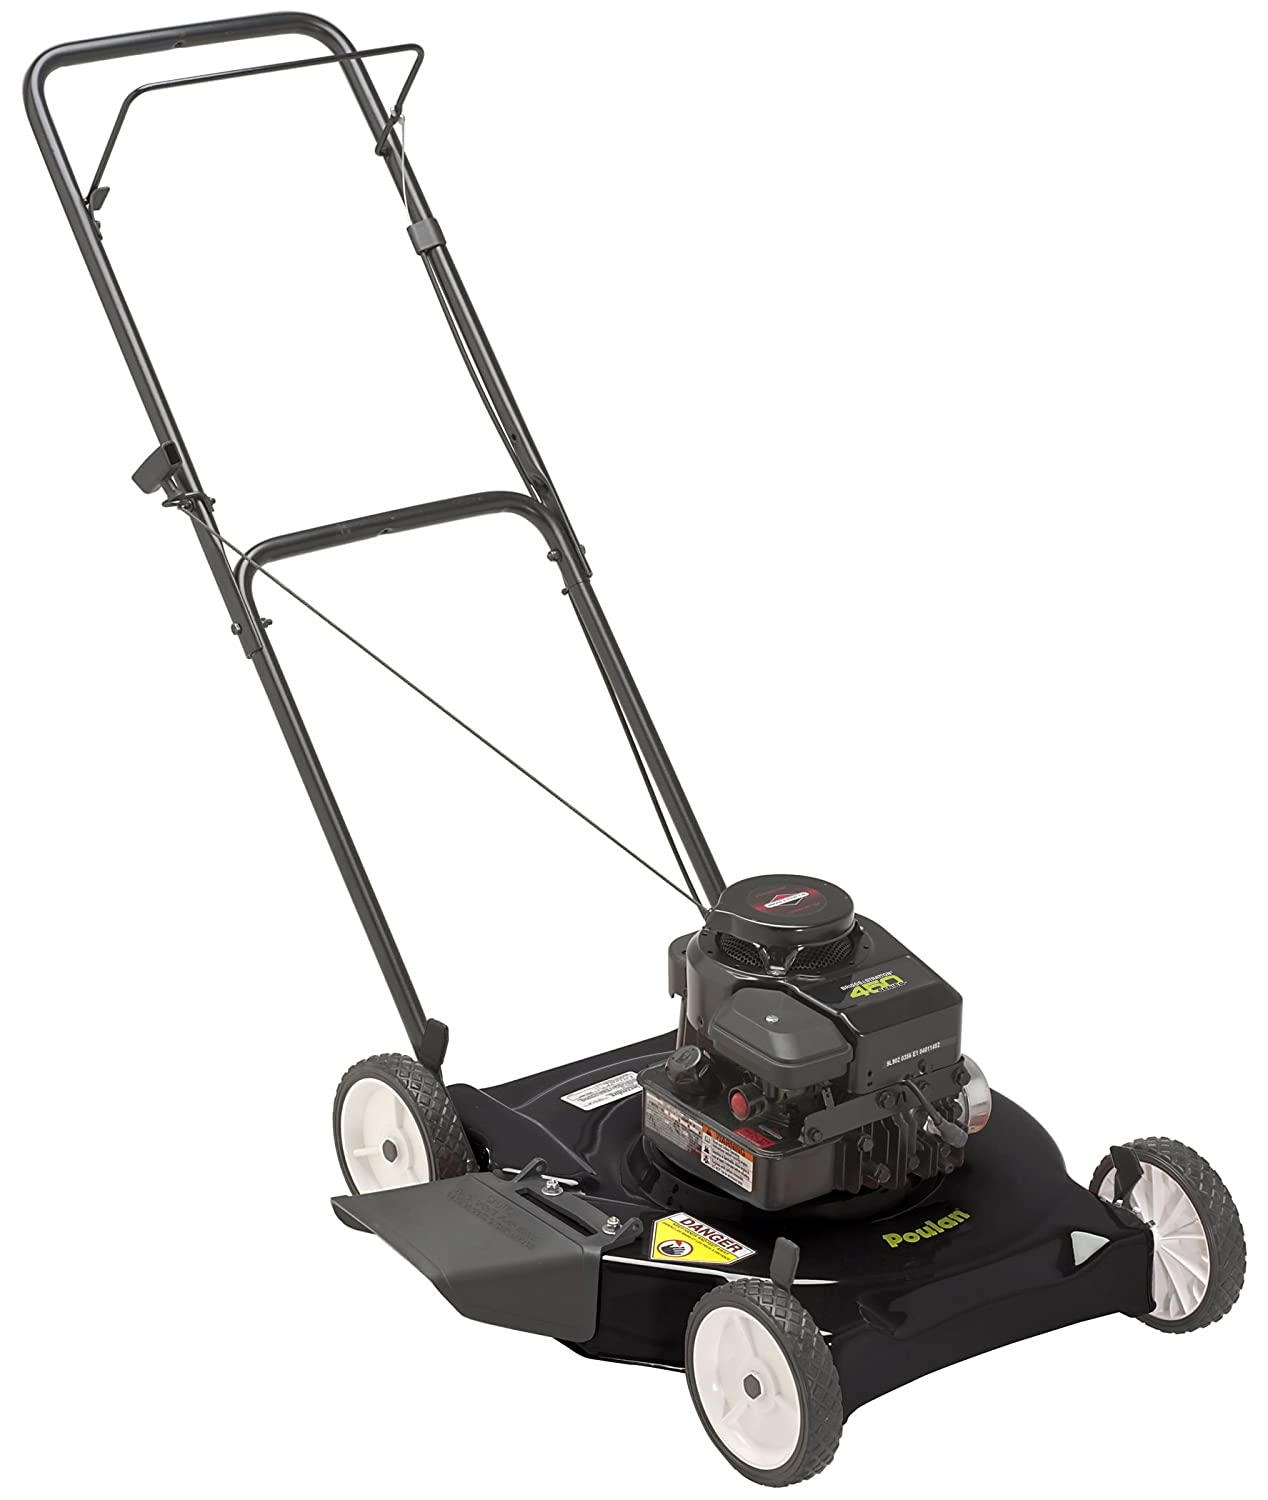 The Best Gas Powered Lawn Mower